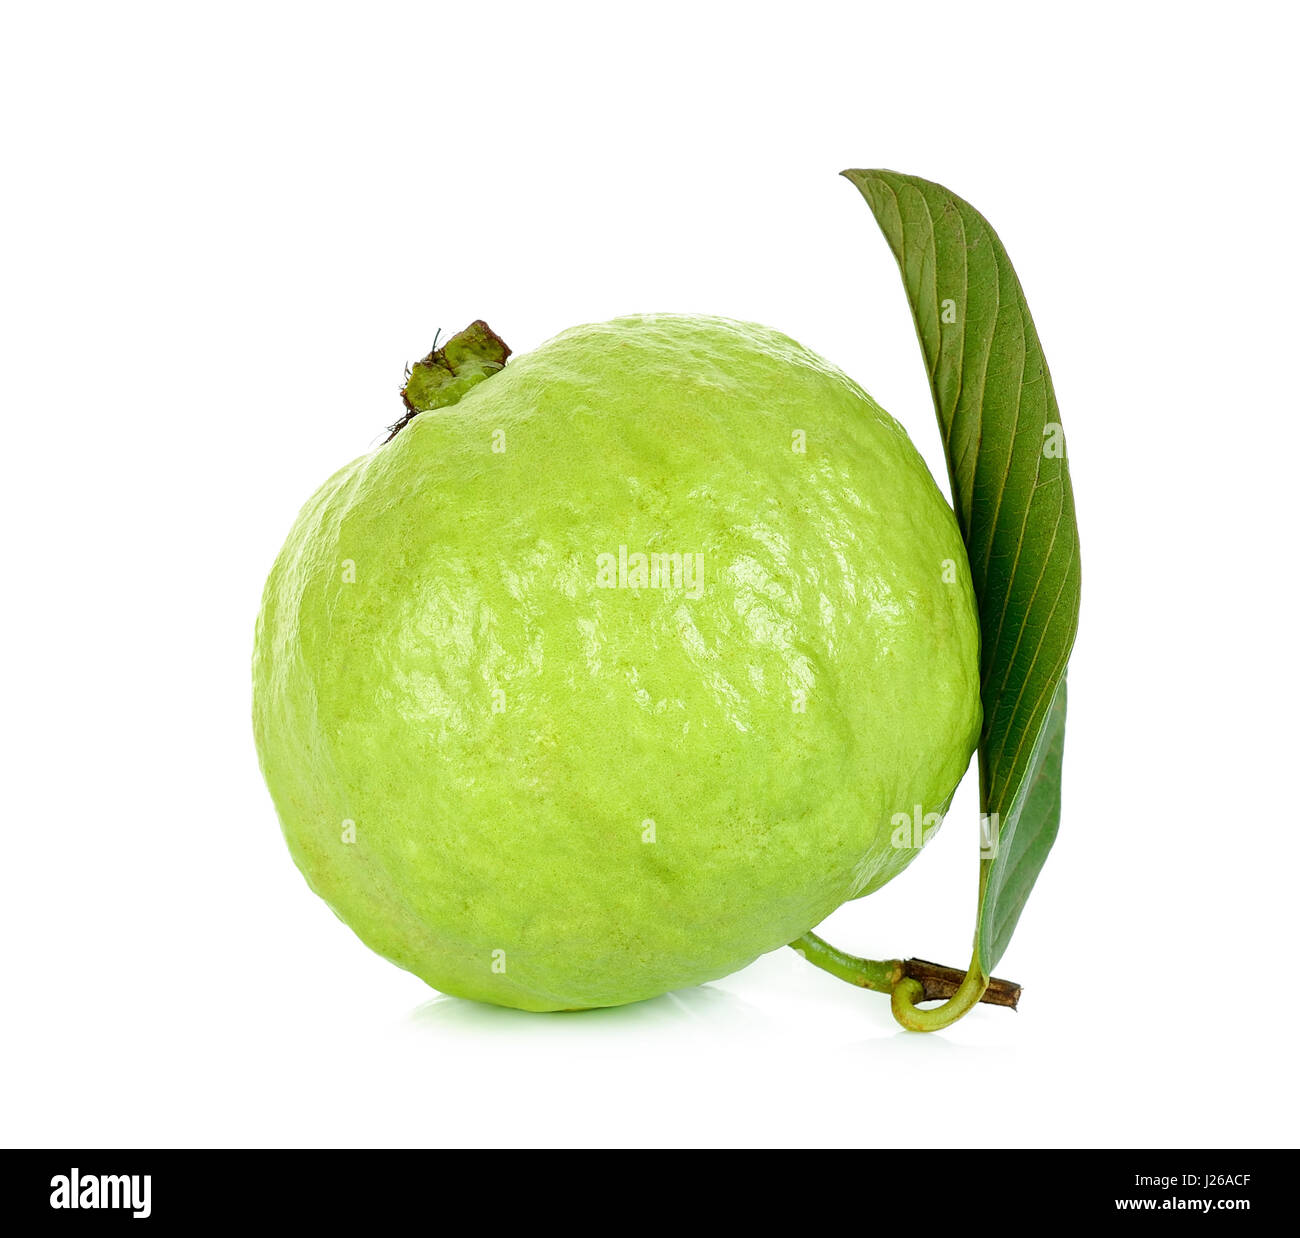 Guava Fruit Isolated On The White Background Stock Image Guava Stock Photos  & Guava Stock Images